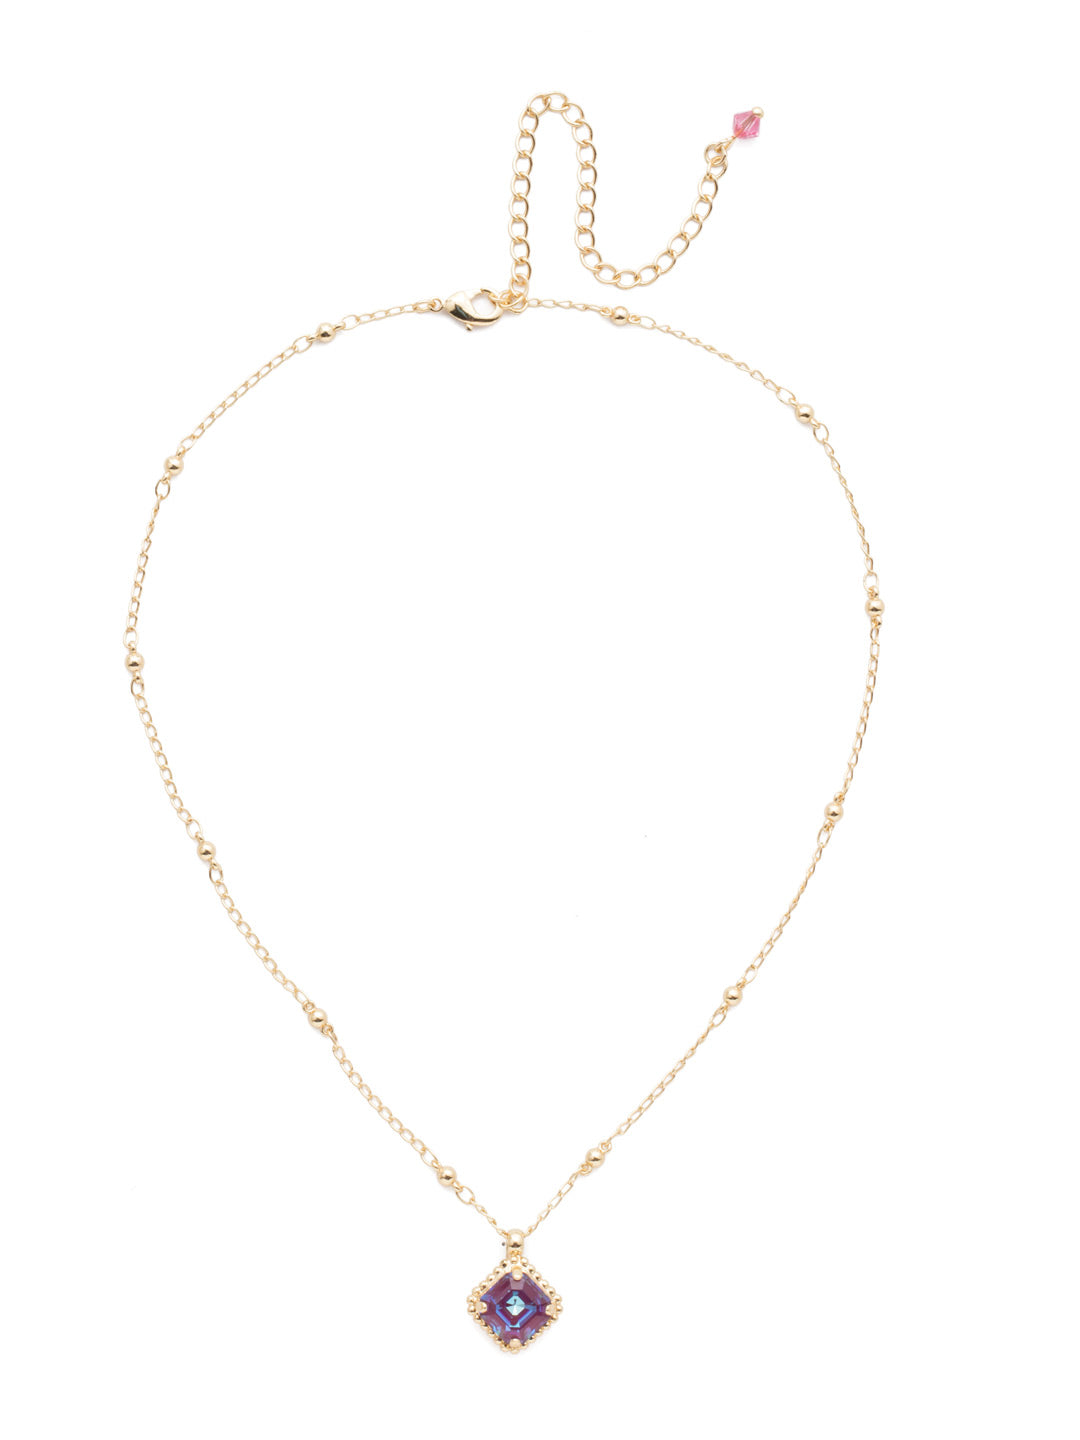 Cushion-Cut Pendant Necklace - NDS50BGBGA